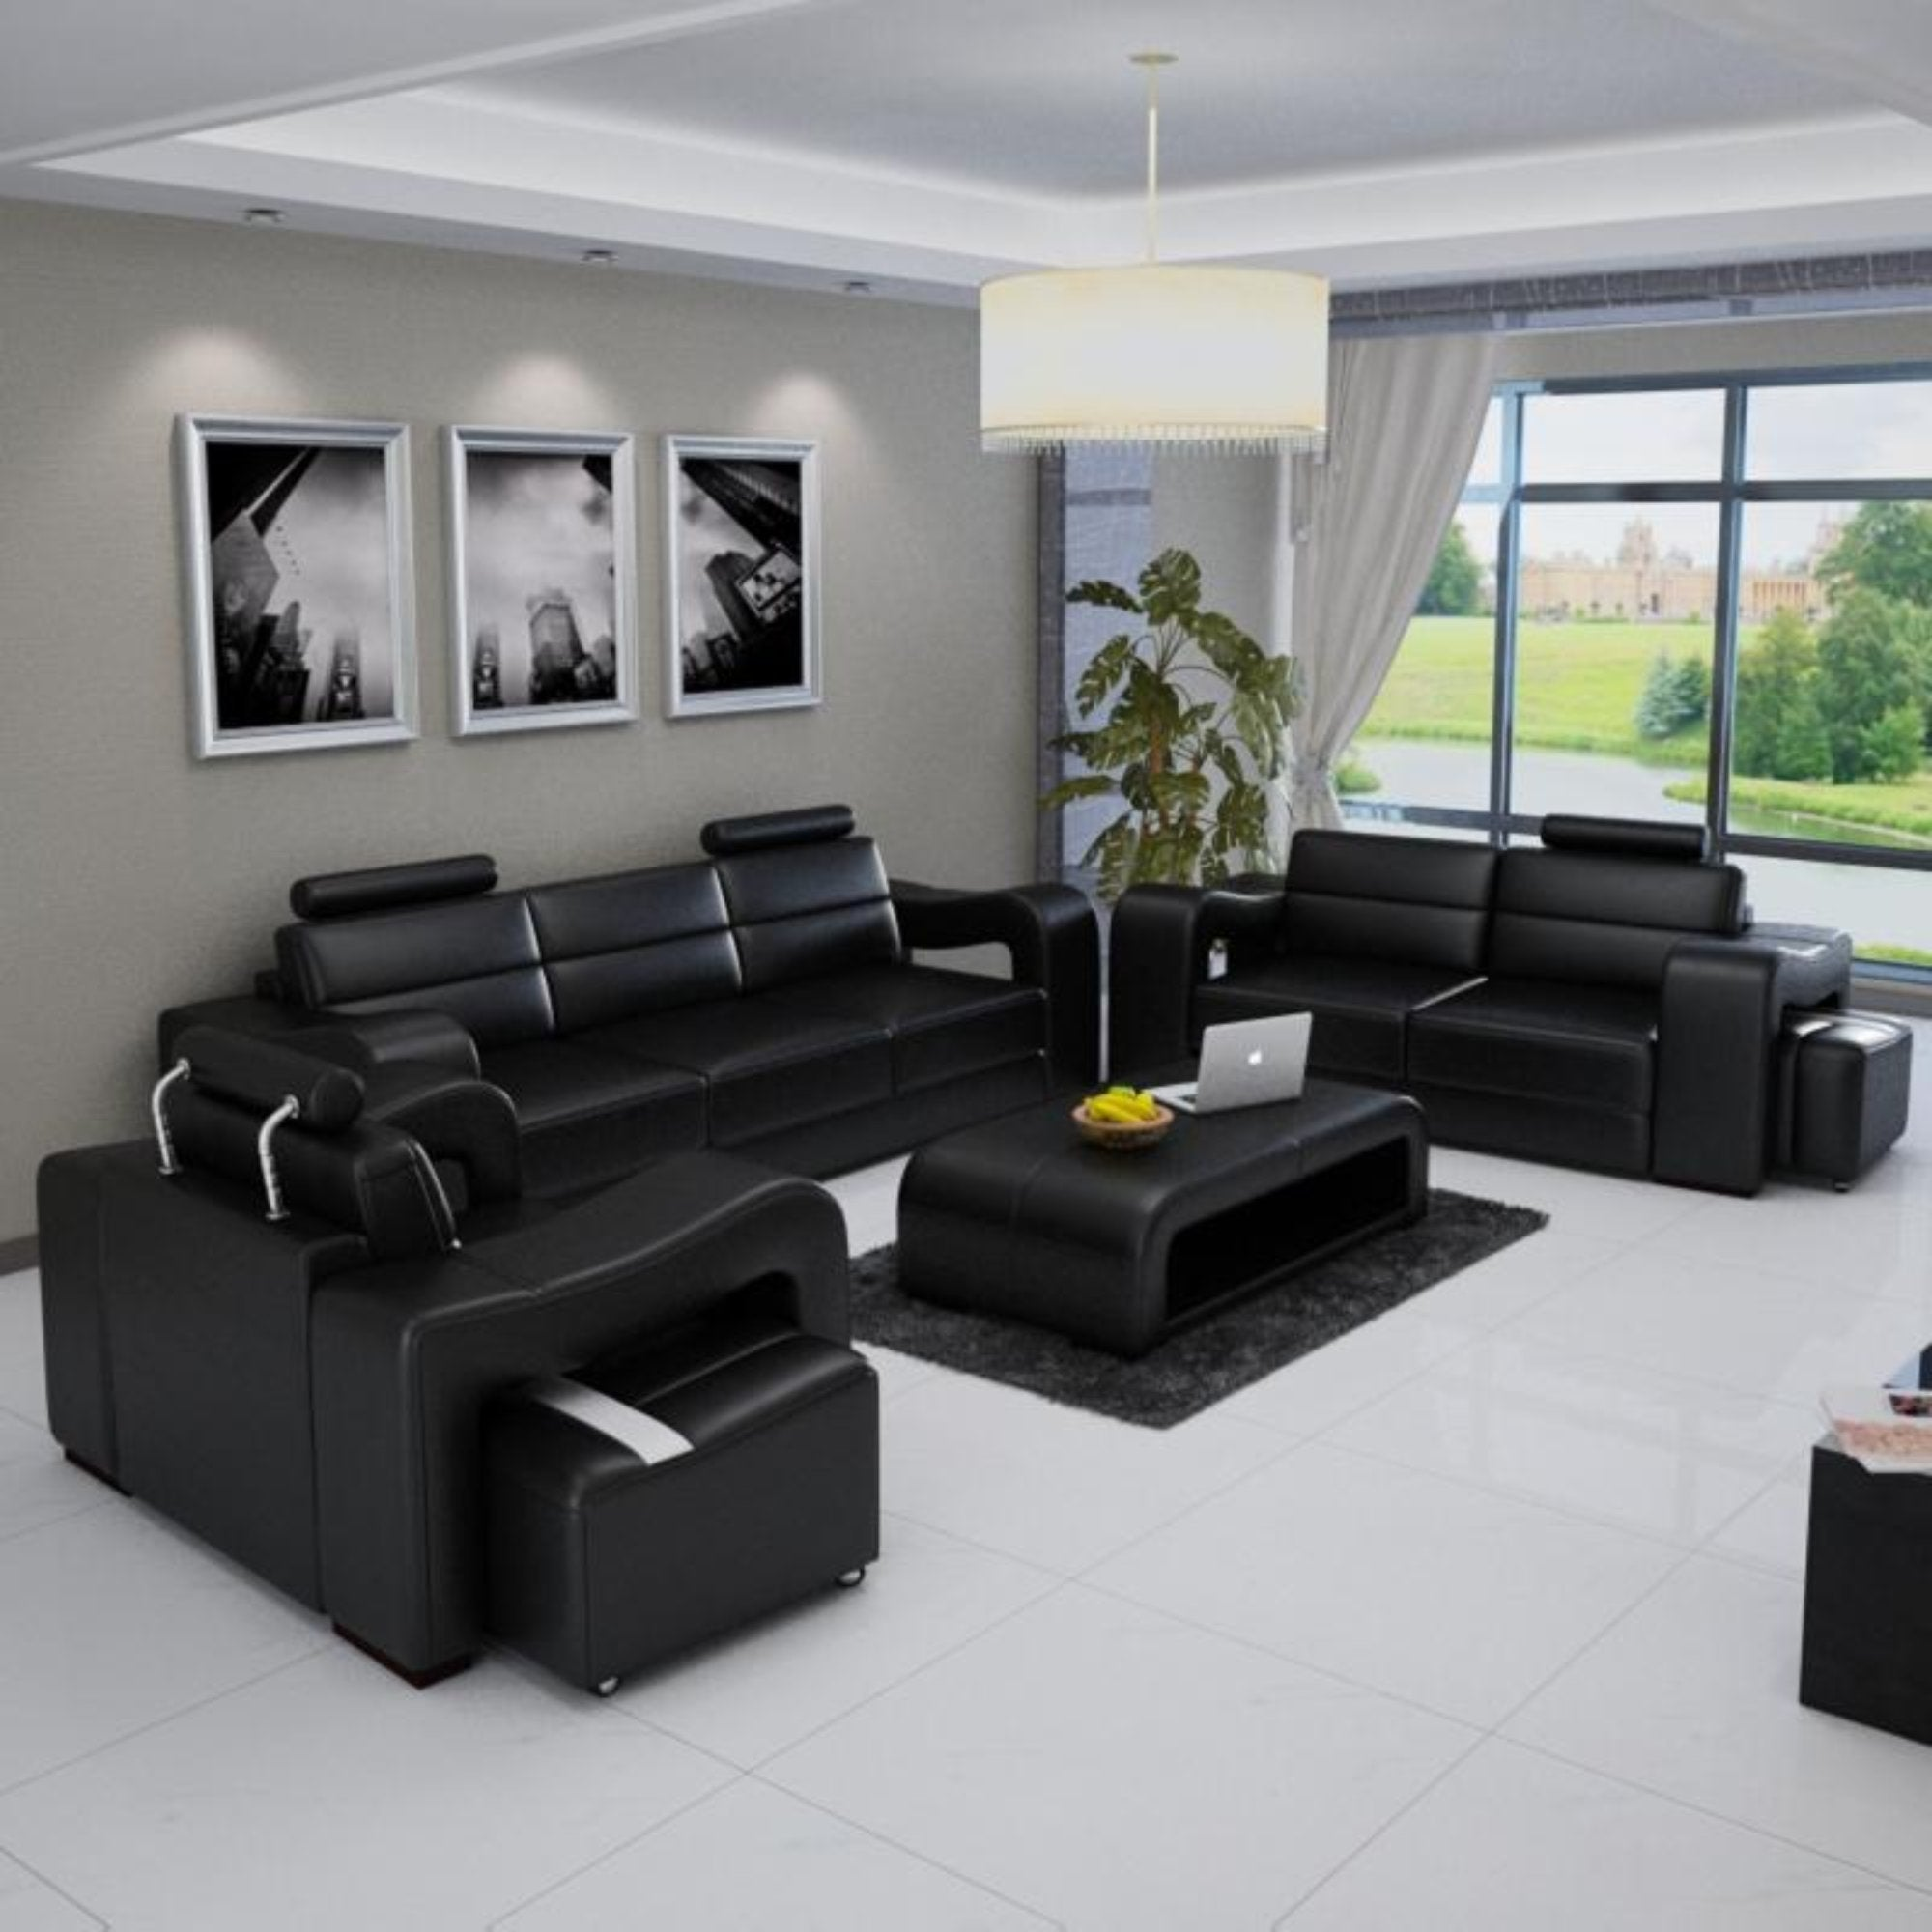 Modern Design ERICA 3+2+1 sofa set